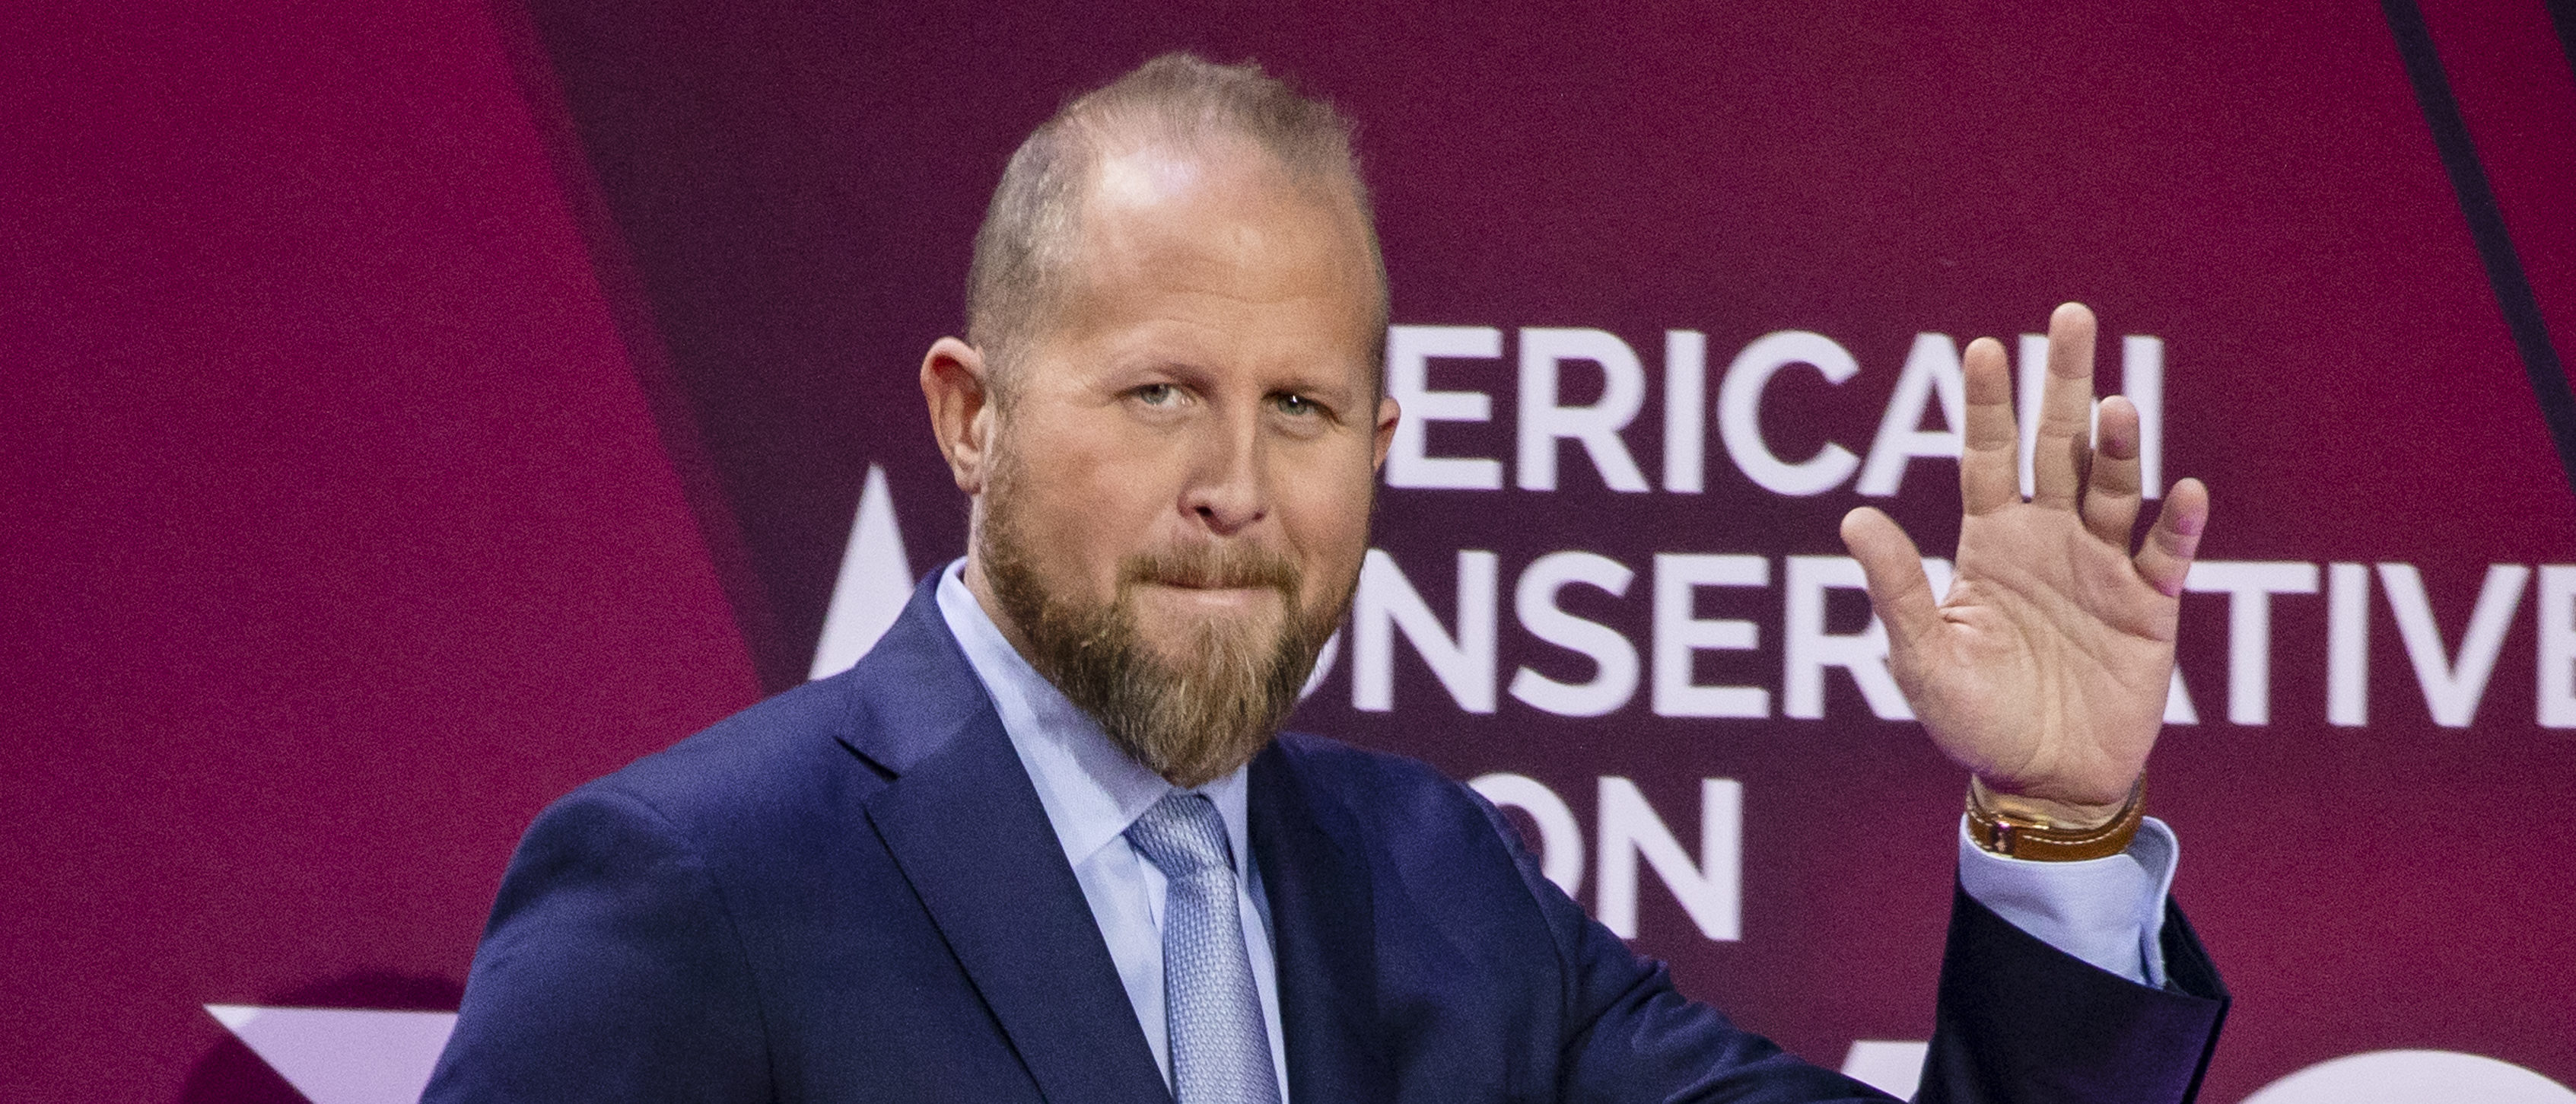 NATIONAL HARBOR, MD - FEBRUARY 28: Brad Parscale, campaign manager for Trump's 2020 reelection campaign, walks on stage during the Conservative Political Action Conference 2020 (CPAC) hosted by the American Conservative Union on February 28, 2020 in National Harbor, MD. (Photo by Samuel Corum/Getty Images)